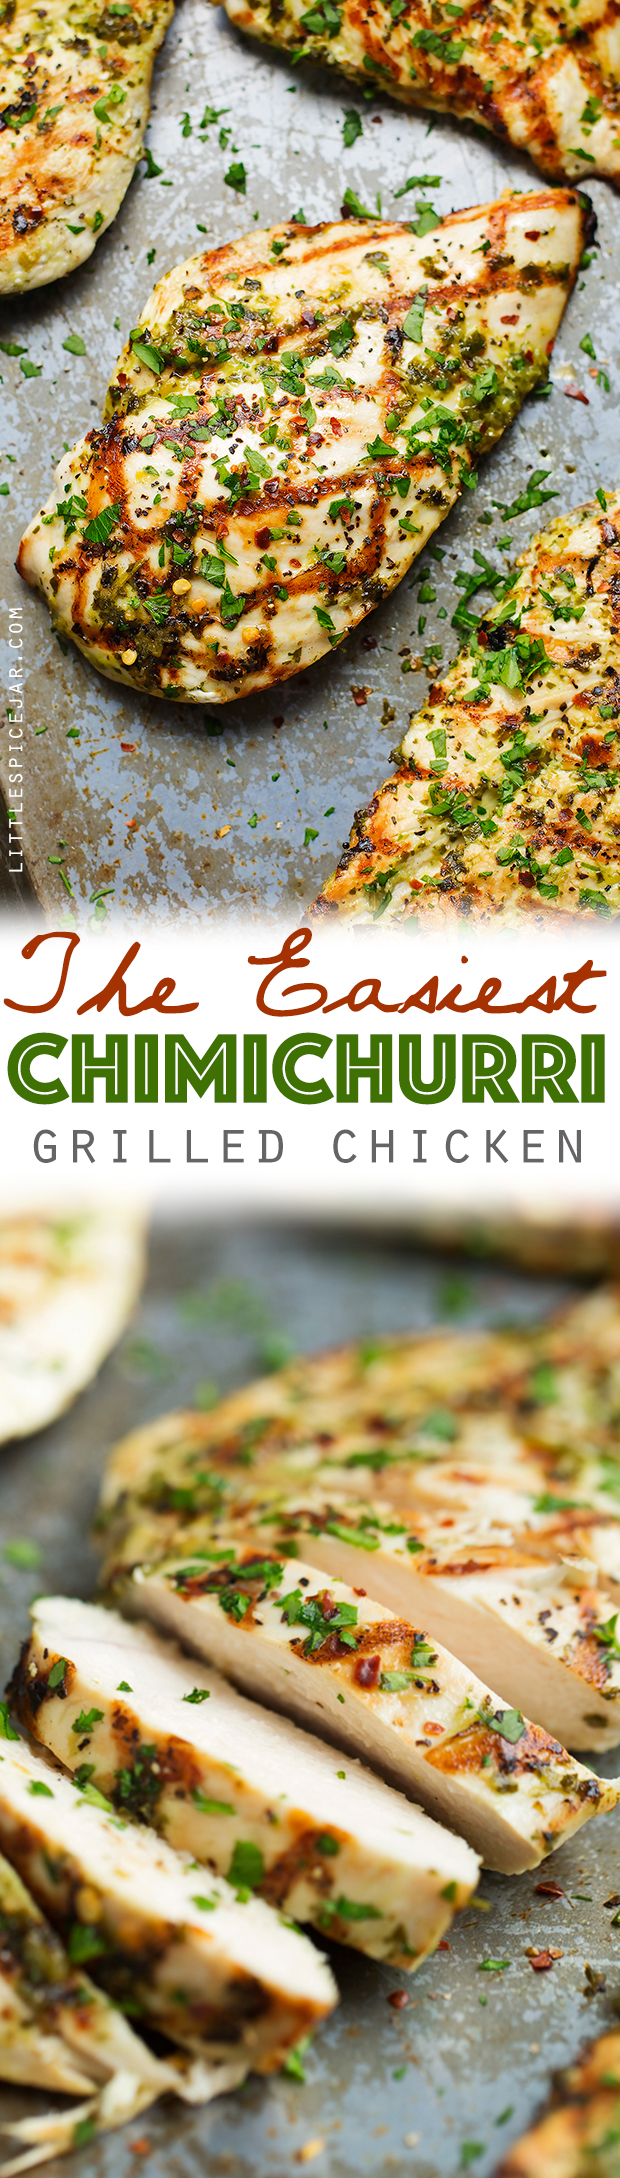 The Easiest Grilled Chimichurri Chicken - Chicken breasts marinated in homemade chimichurri sauce. This takes less than 5 minutes to prep and tastes AMAZING! #chimichurrichicken #grilledchicken #chickendinner | Littlespicejar.com